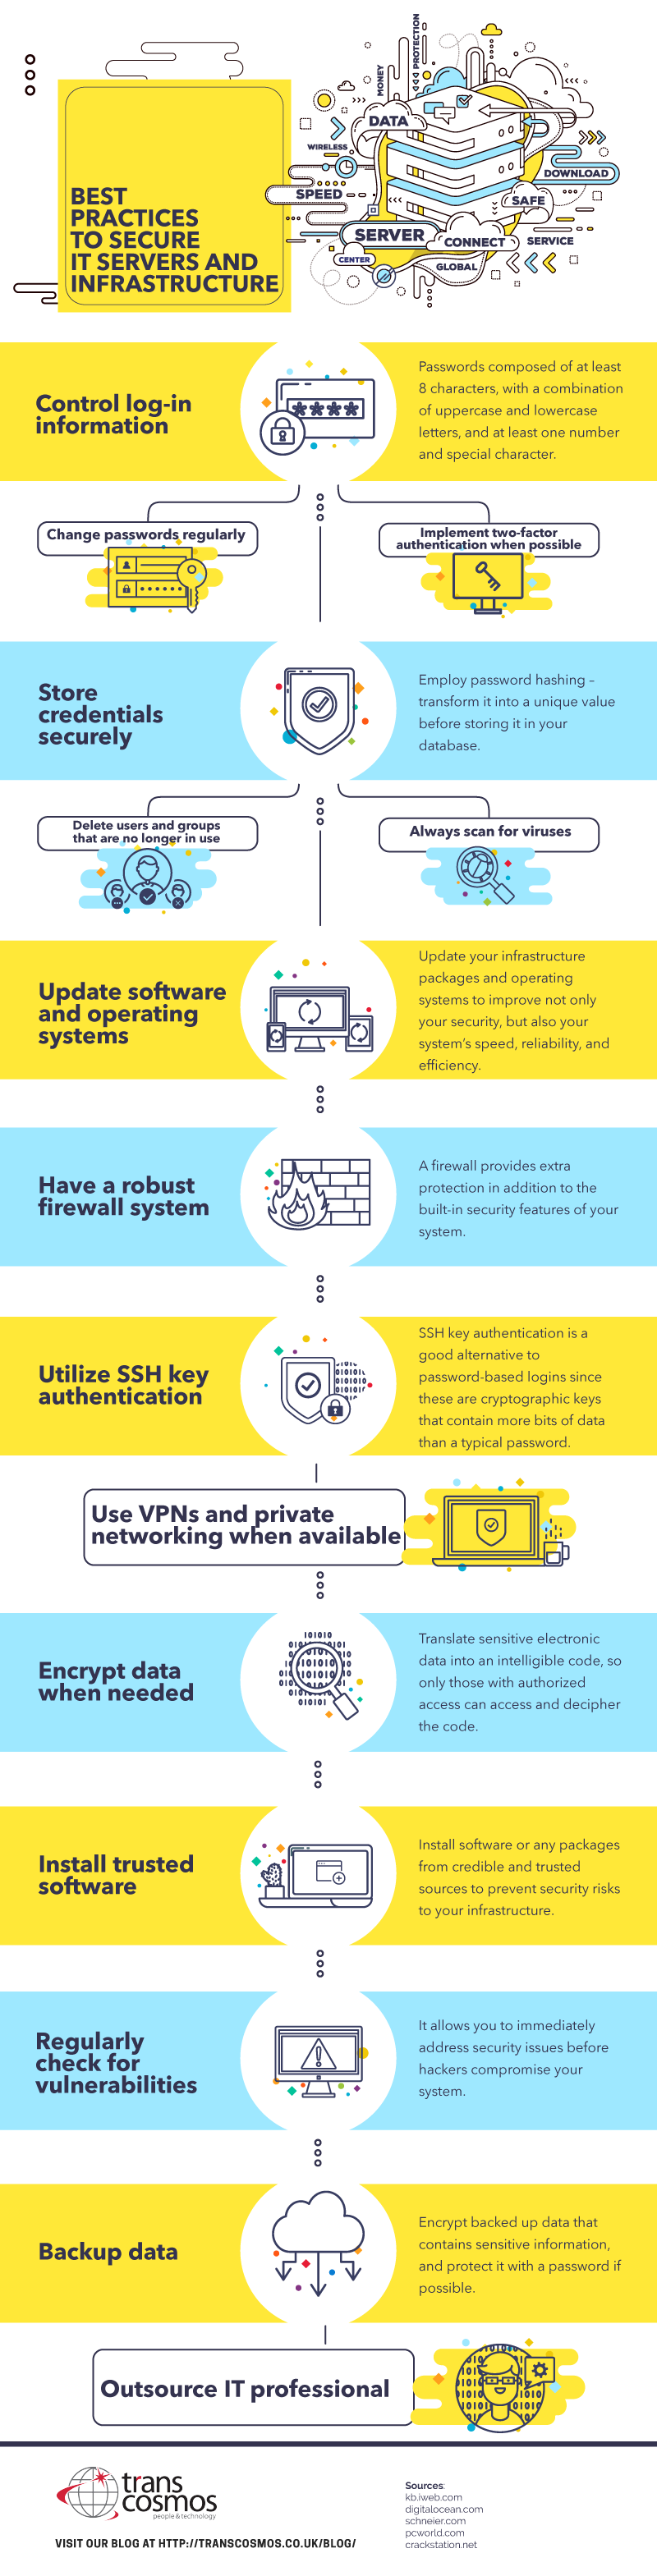 Best-Practices-to-Secure-IT-Servers-and-Infrastructure-infographic